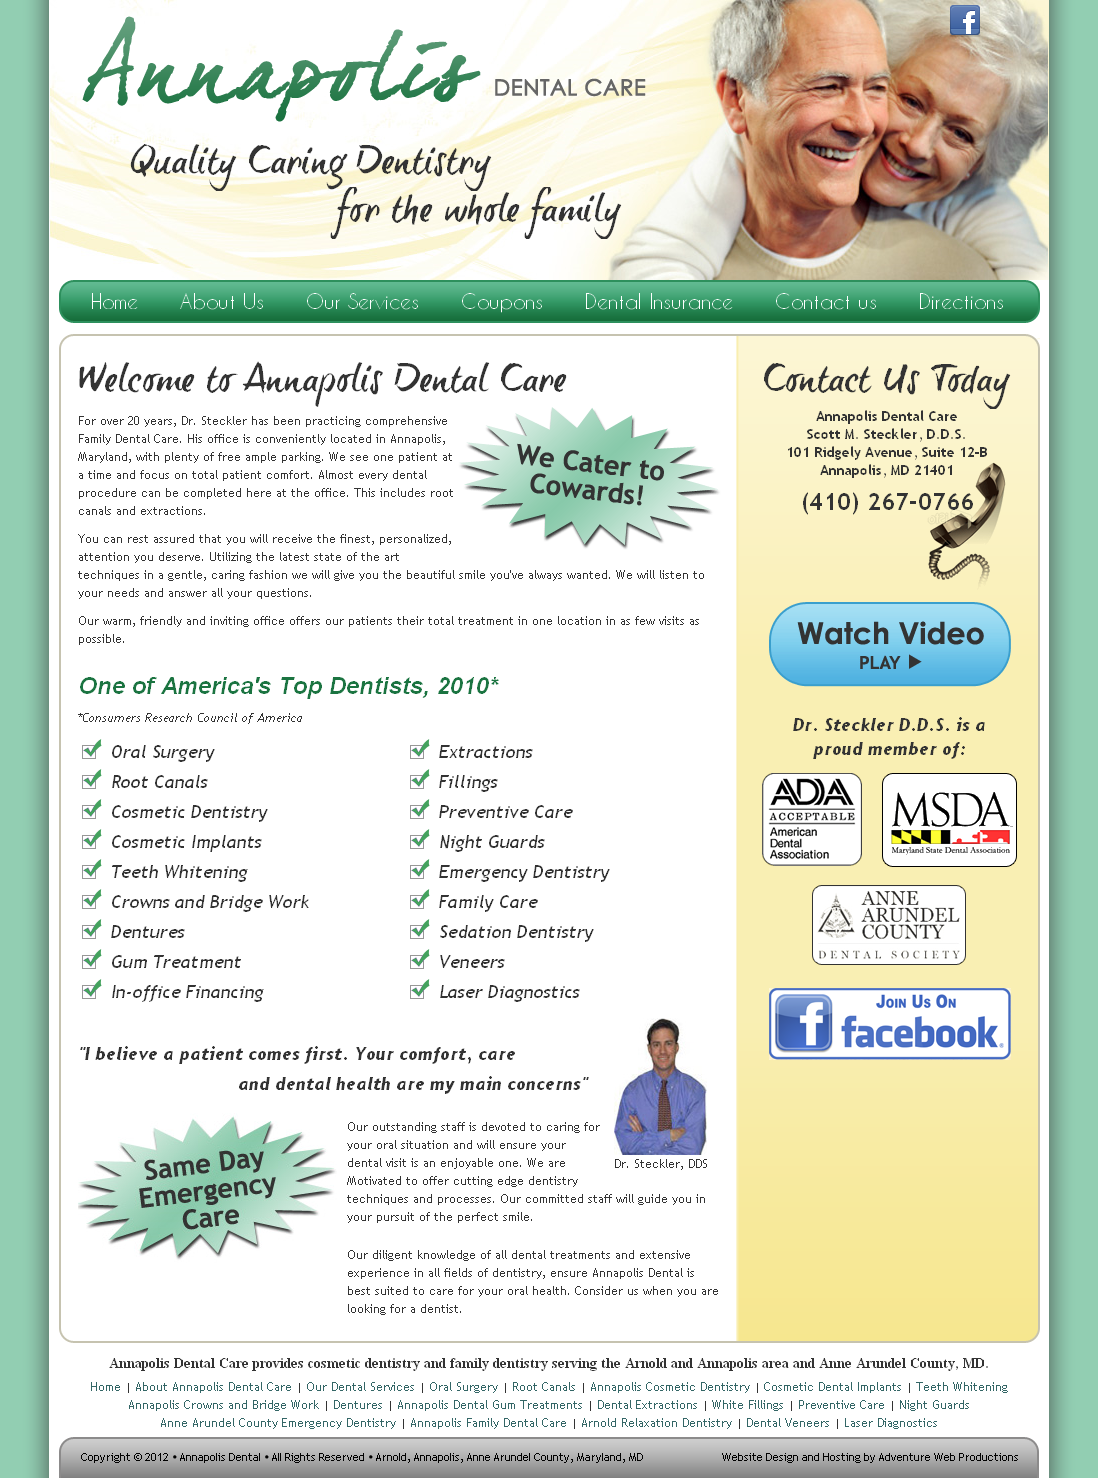 Adventure Web Productions has recently launched Annapolis Dental Care's new mobile website!